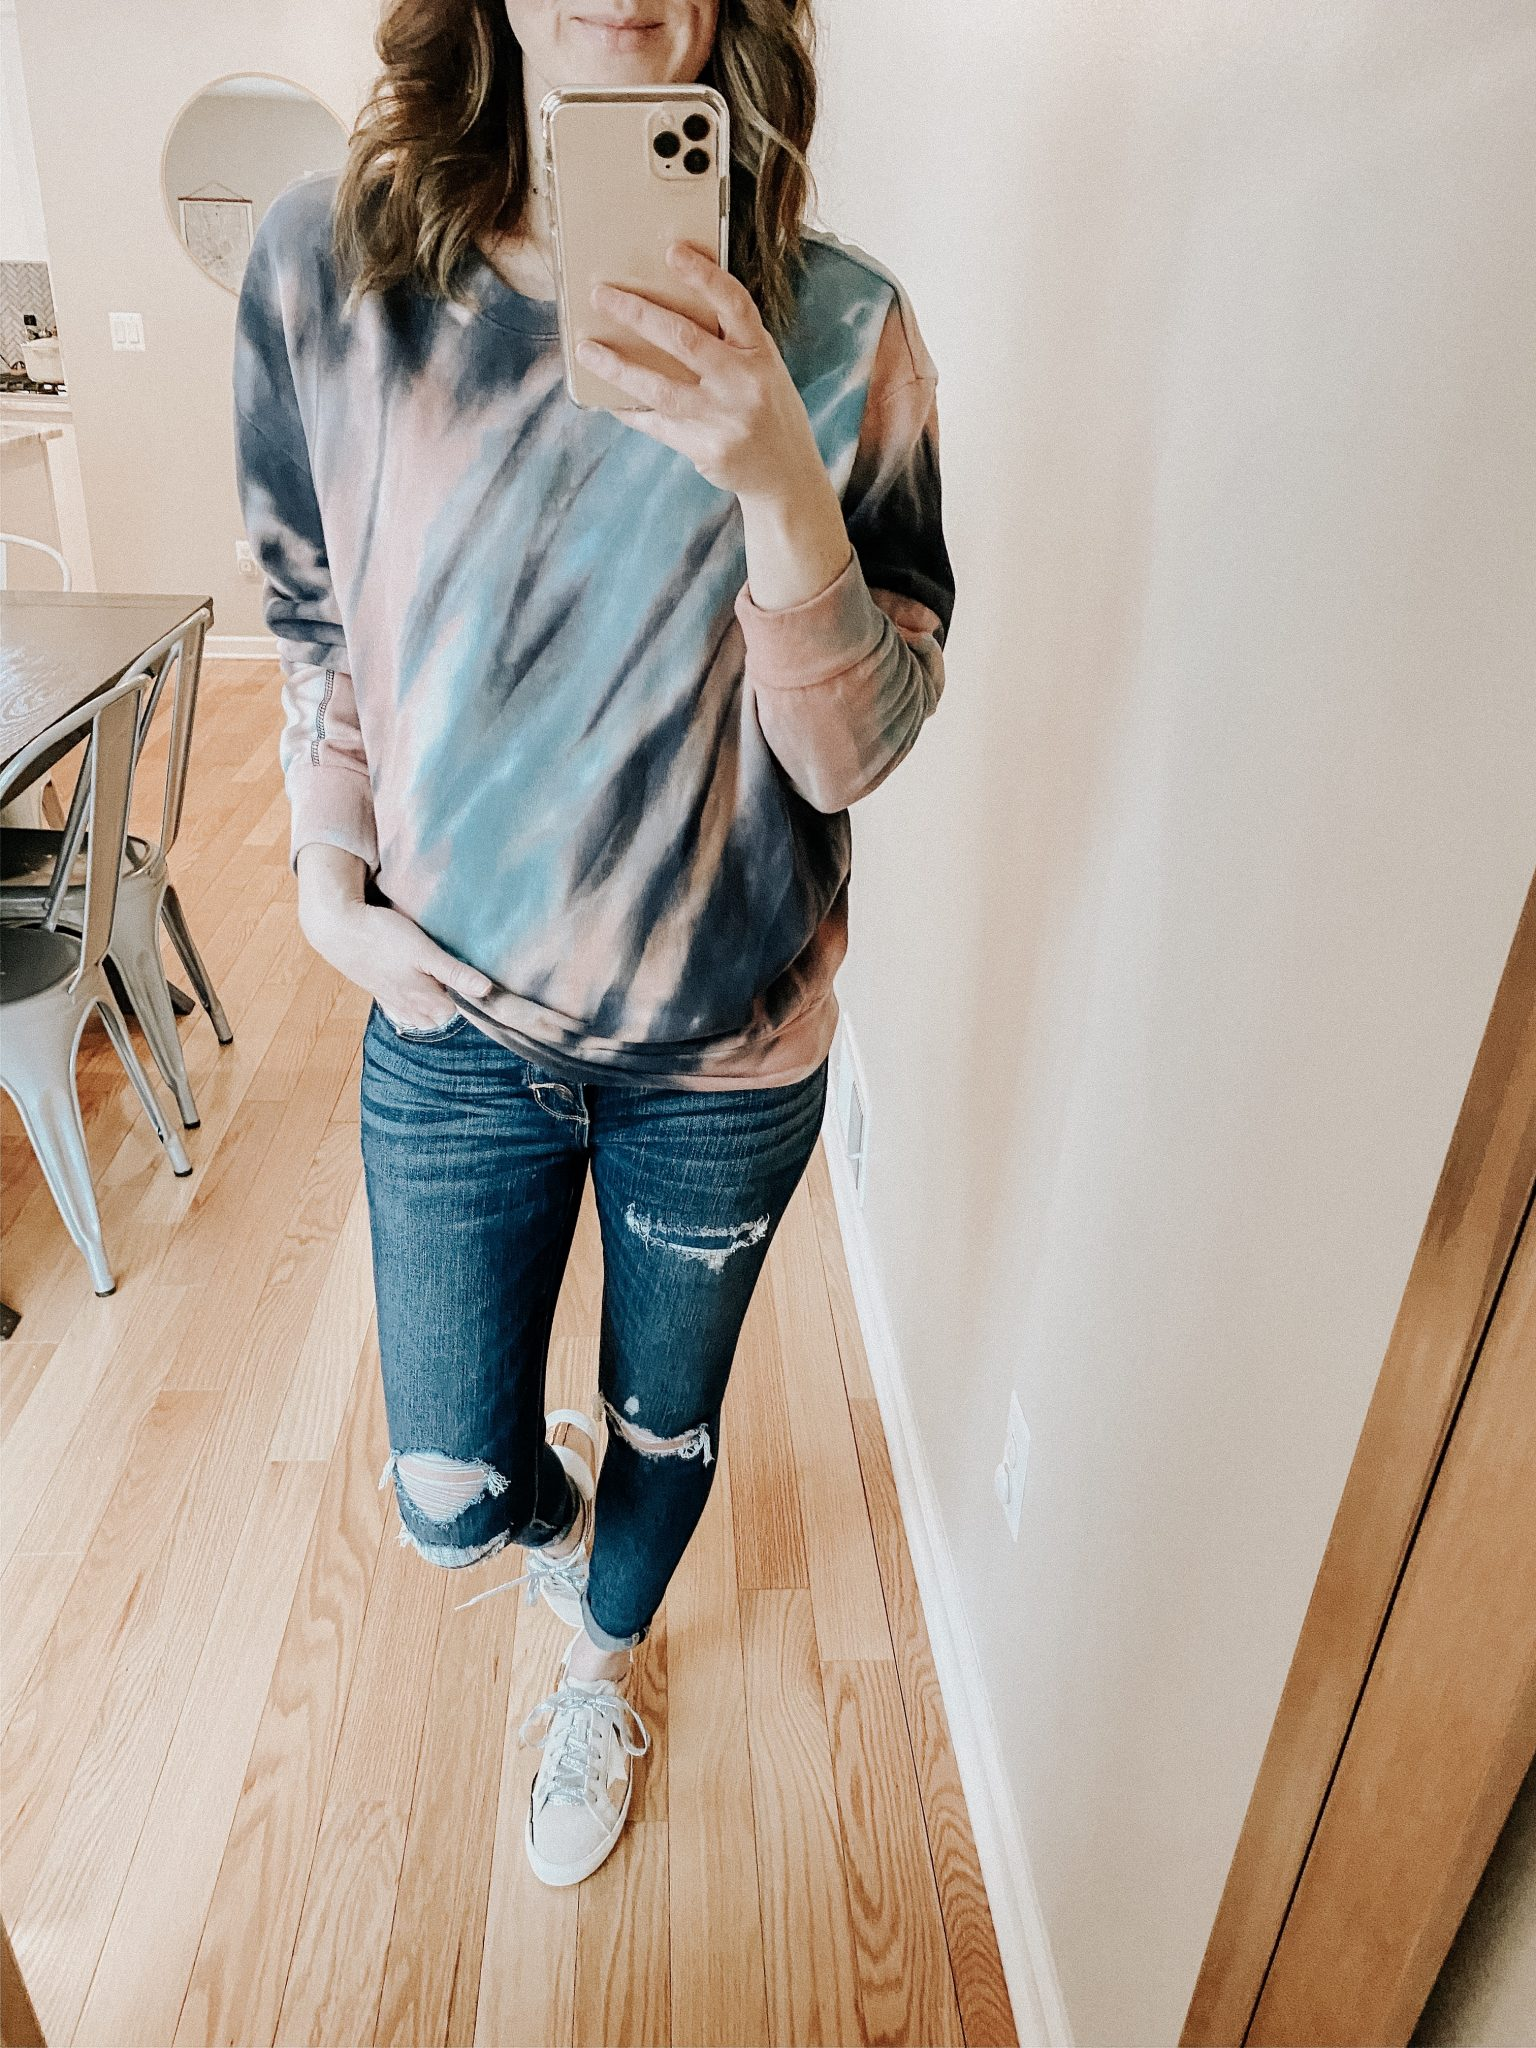 Graphic Sweatshirt Try On | Daily Splendor Life and Style Blog | Tie dye sweatshirt #momlife #momstyle #casualstyle #springstyle #springfashion